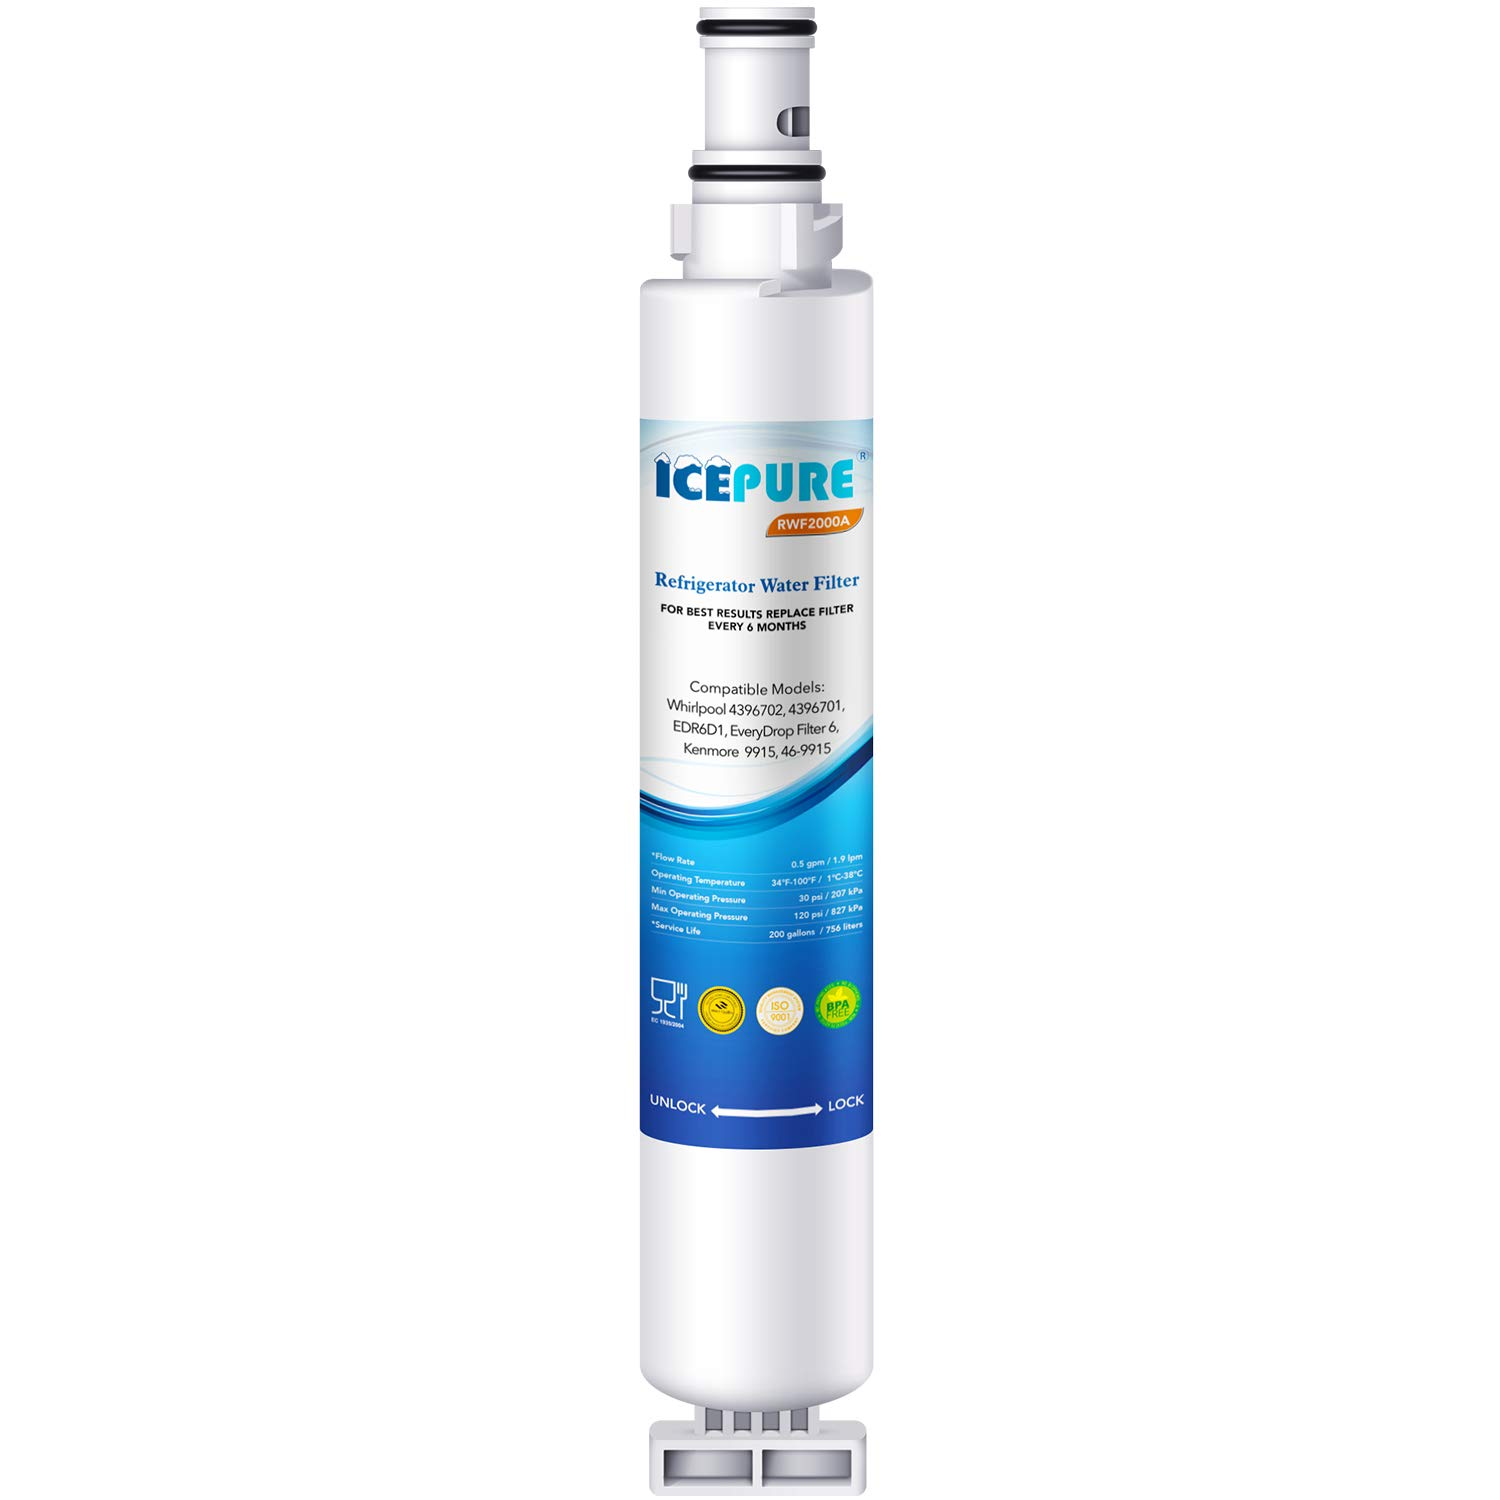 IcePure Water Filter, Compatible with Whirlpool 4396701, 4396702, Kenmore 469915 models, 1 pack